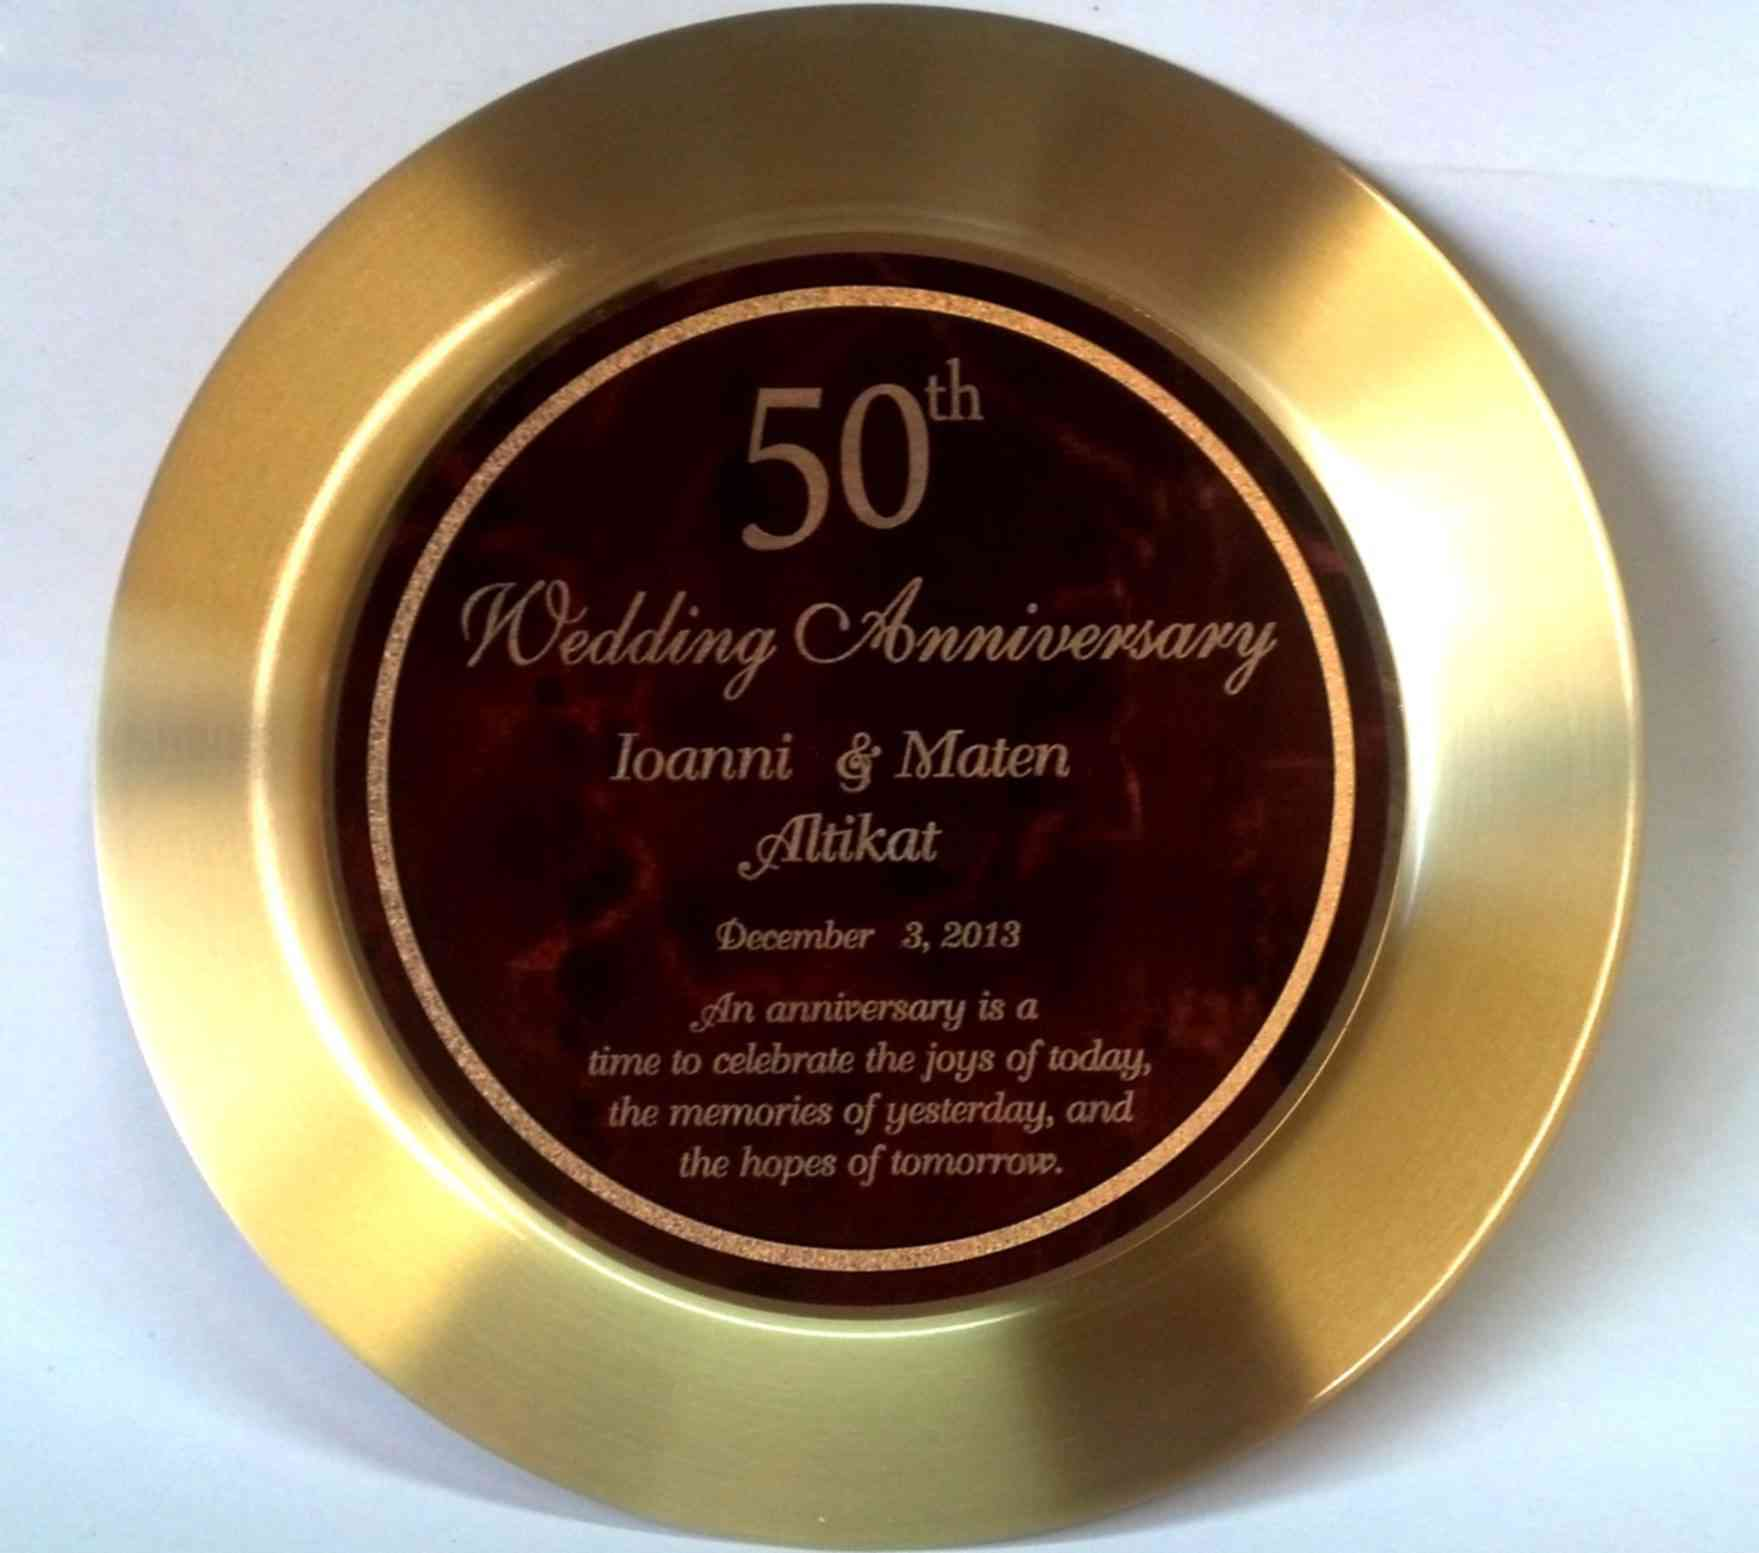 Brass Gifts For Wedding Anniversary: Brass Plate Engraved For 50th Wedding Anniversary